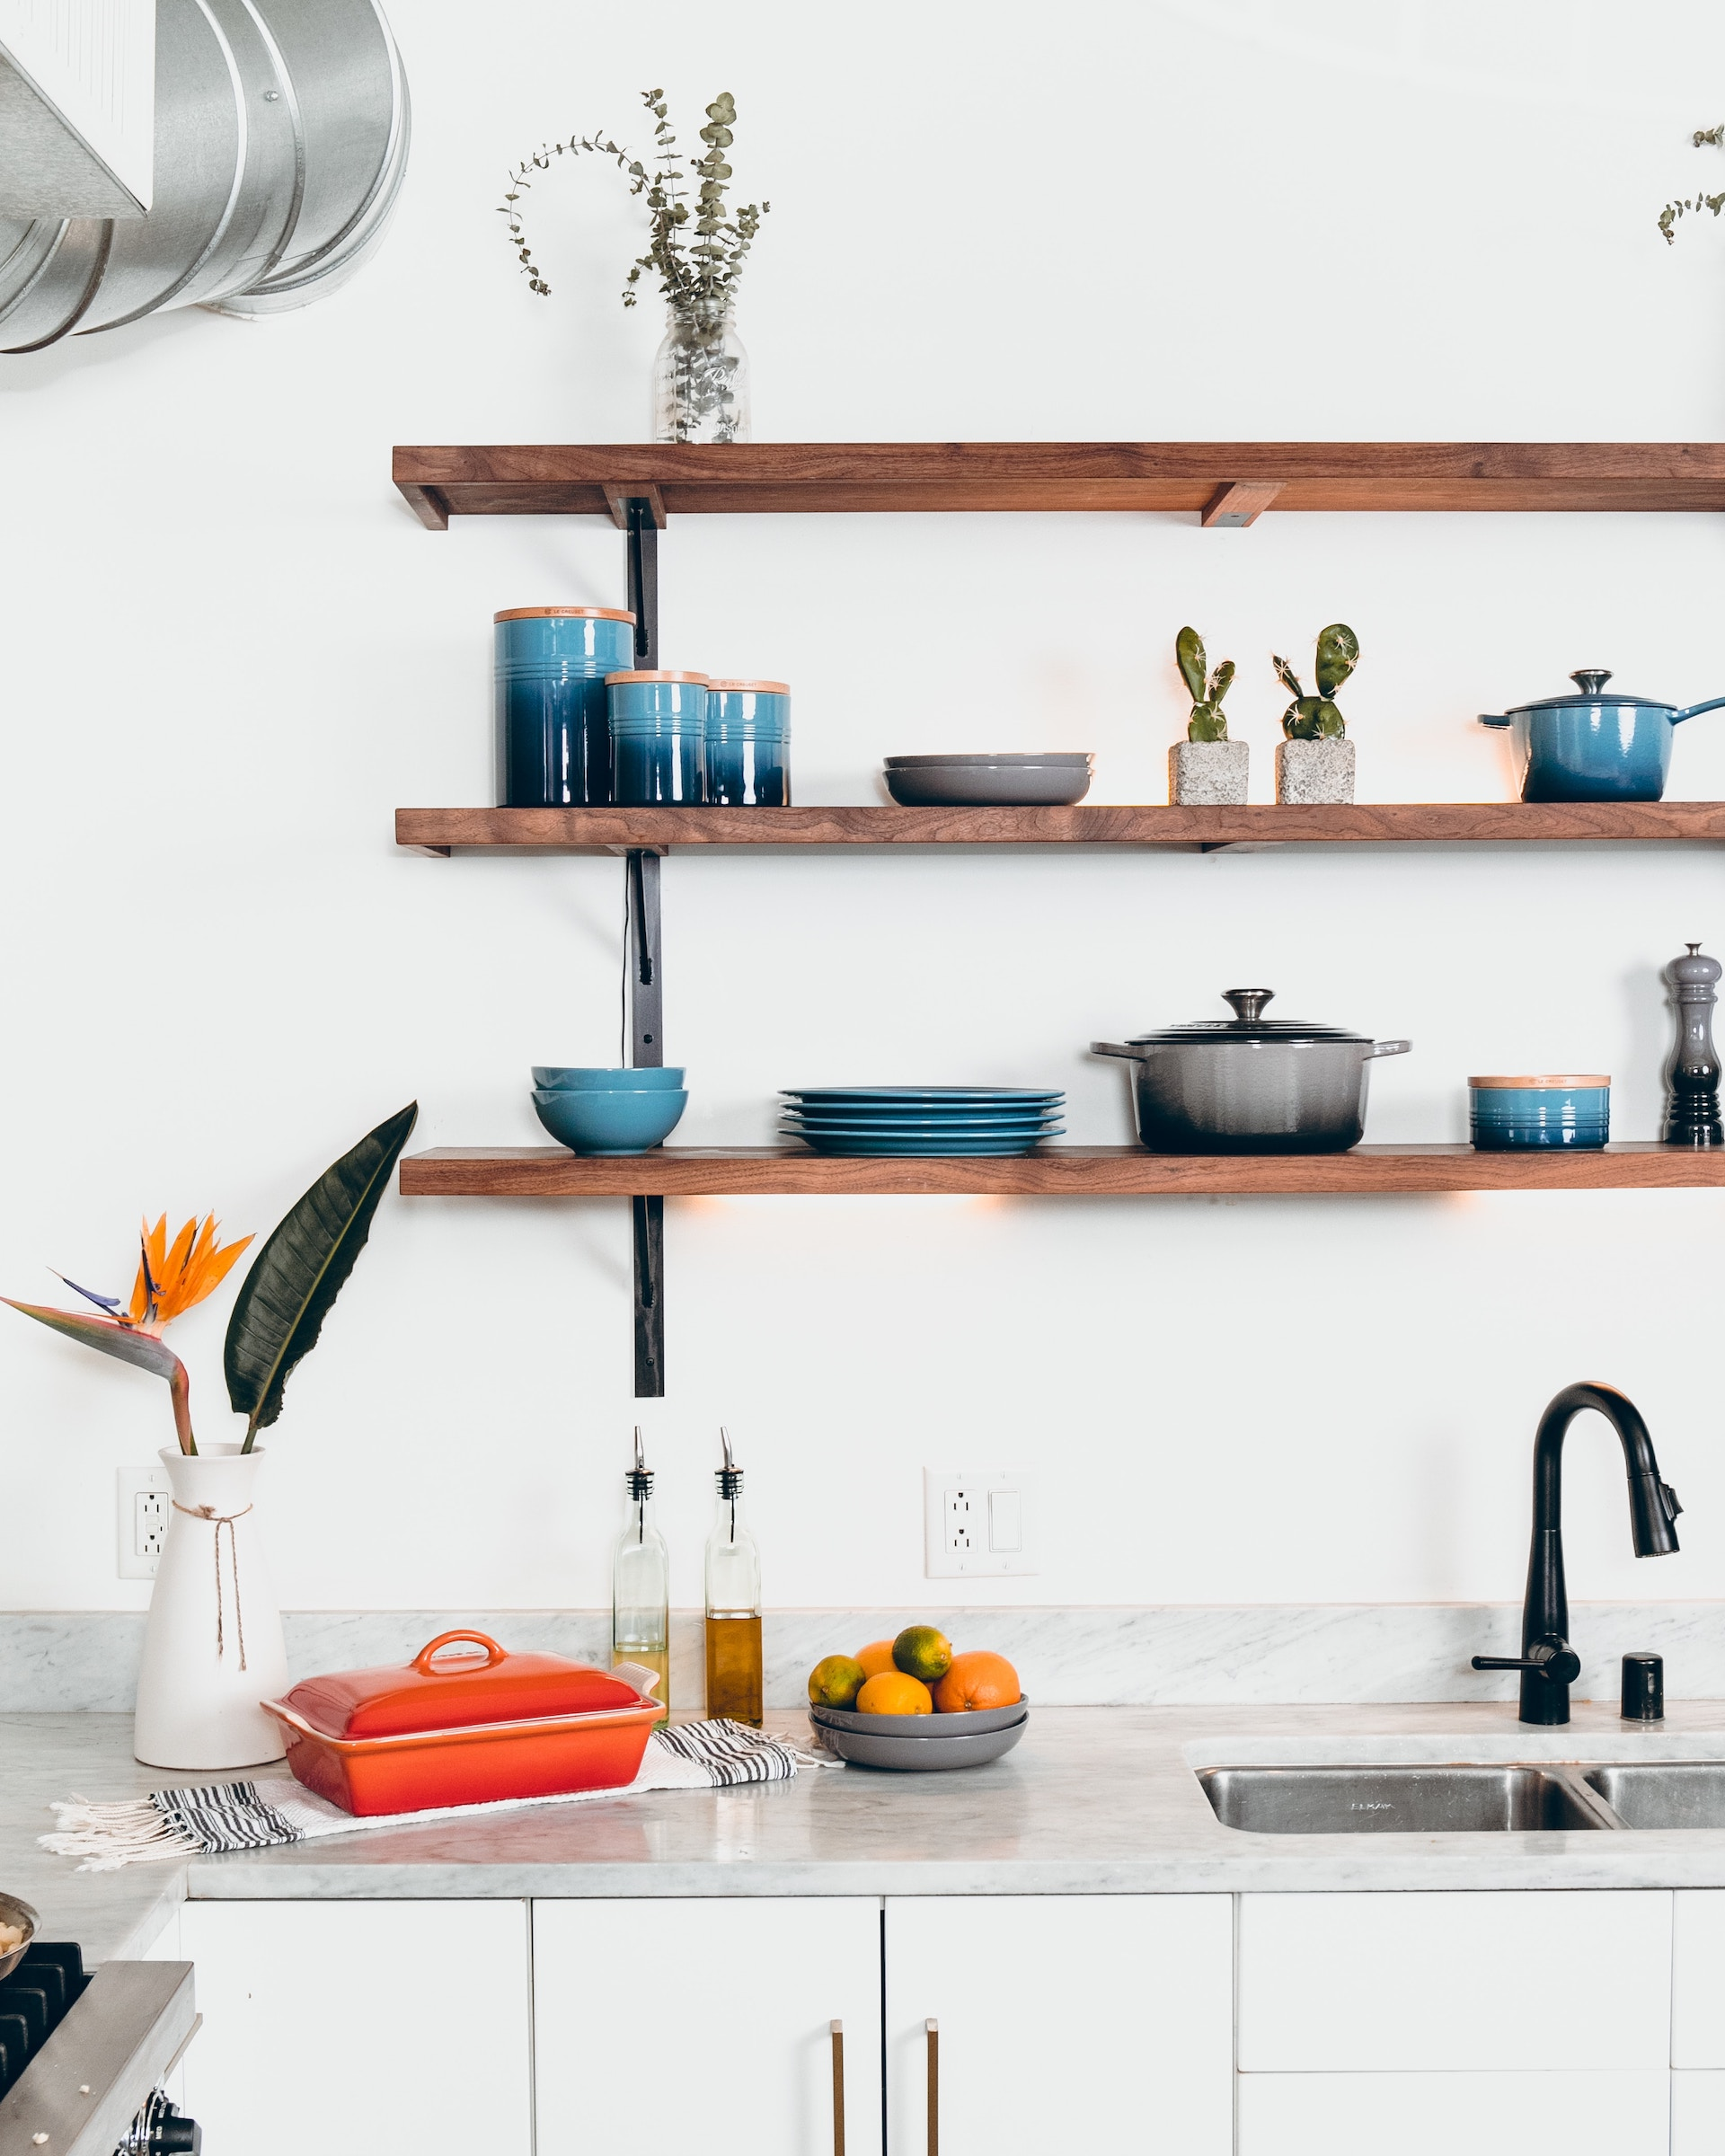 We're loving open shelves that allow you to show off your favorite dishes, vases, and plants